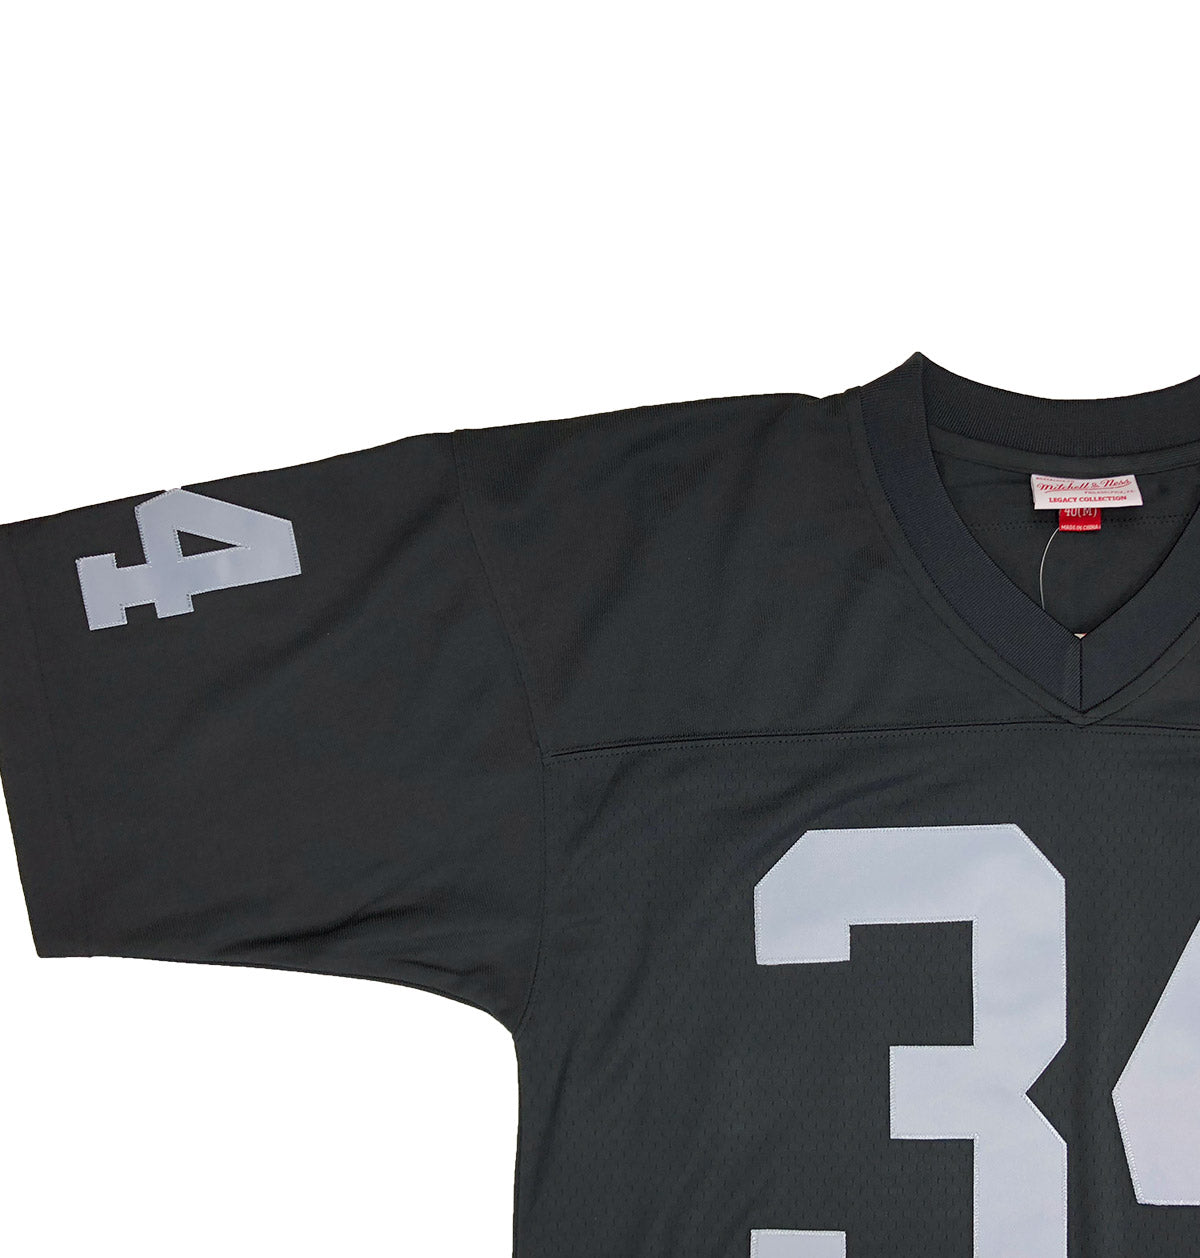 best service c0537 78b69 where can i buy oakland raiders legacy jersey 89c80 cca24